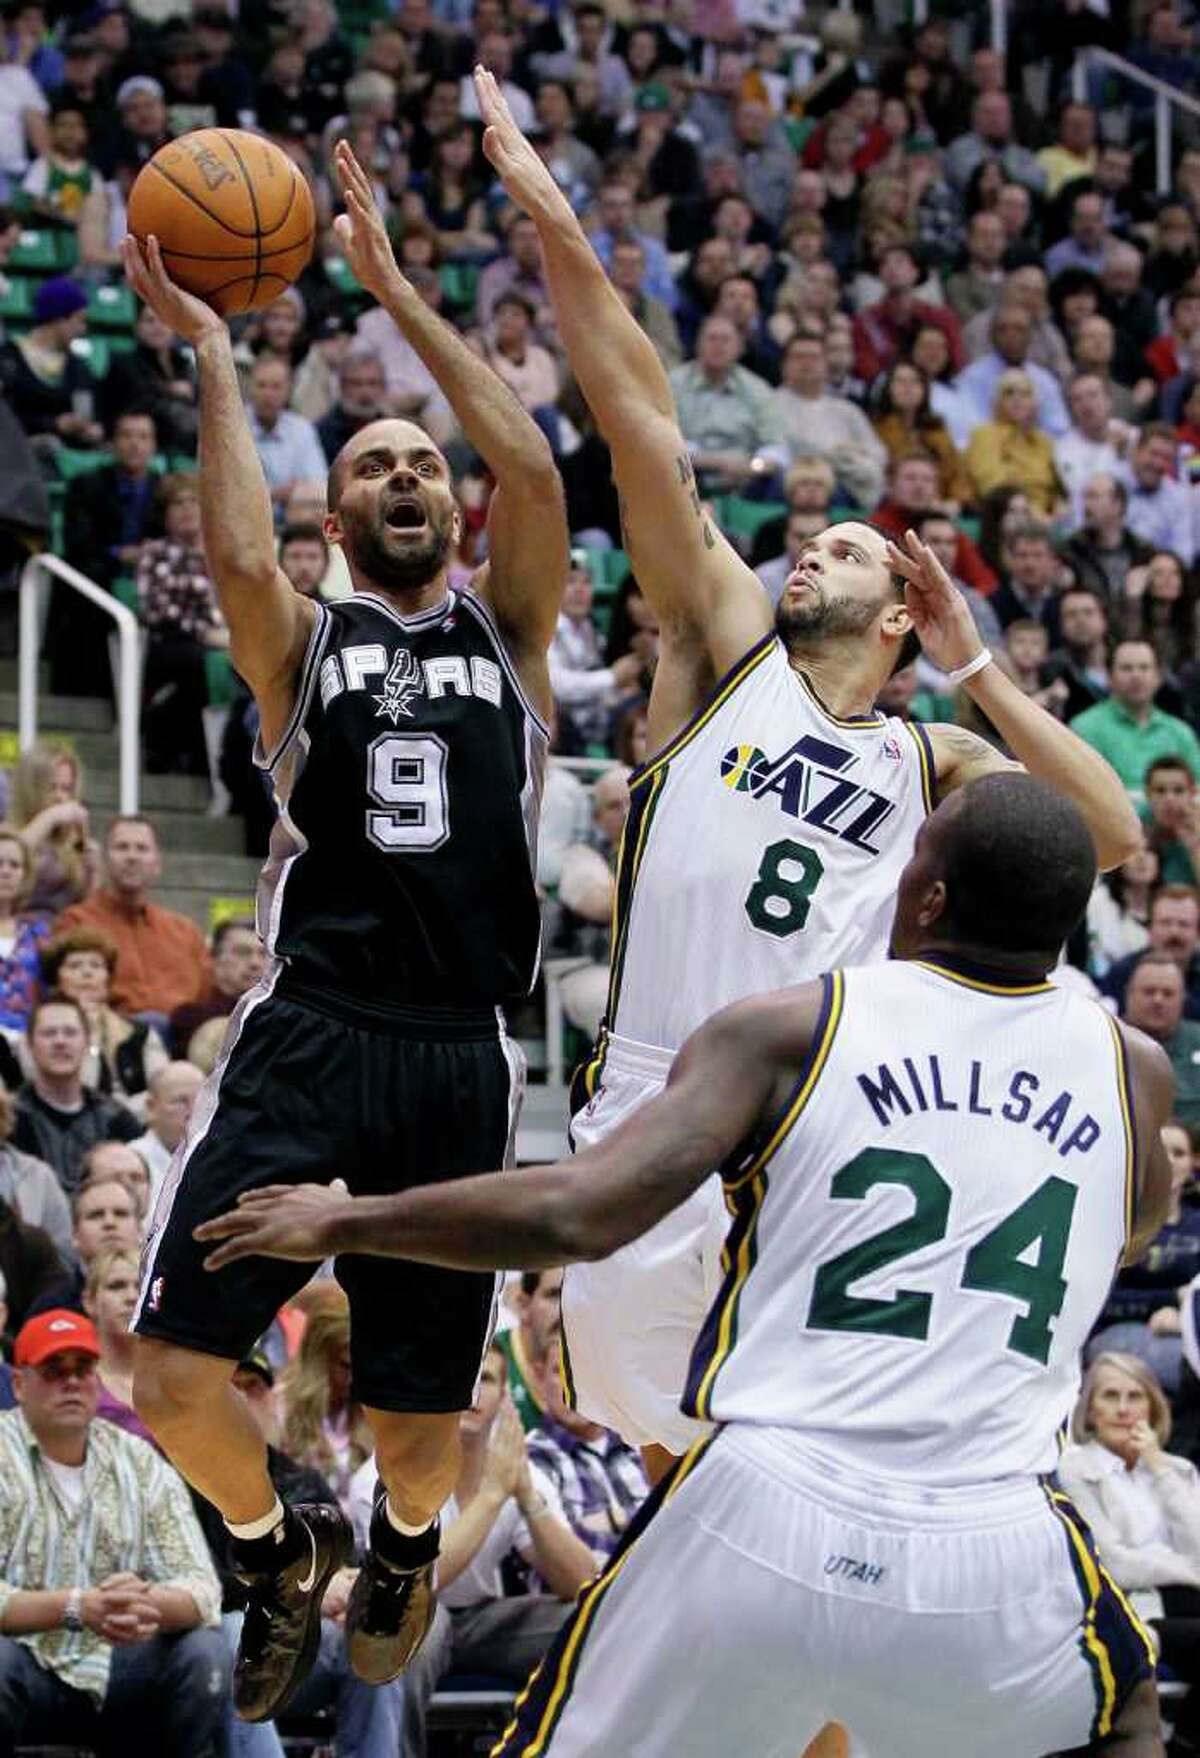 Spurs guard Tony Parker (9) attempts to score as Jazz guard Deron Williams (8) and forward Paul Millsap (24) defend during the first half of an NBA basketball game in Salt Lake City, Wednesday Jan. 26, 2011.